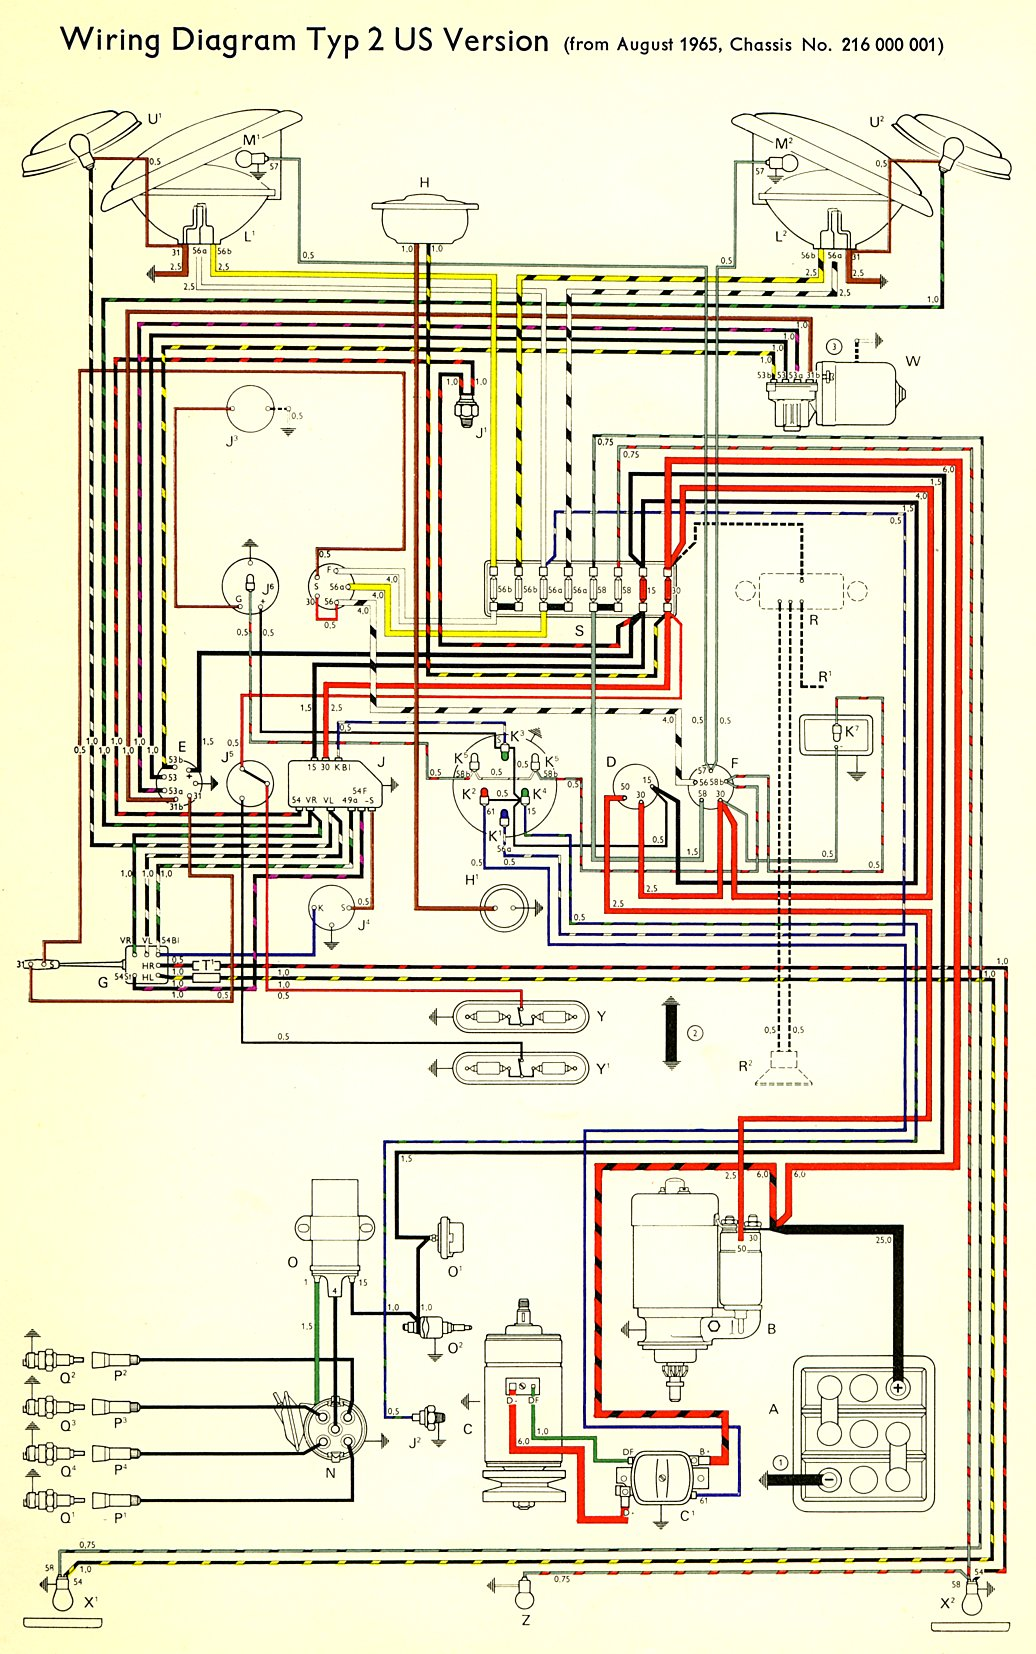 bus_66_USA 1966 bus wiring diagram (usa) thegoldenbug com vw wiring diagrams at couponss.co